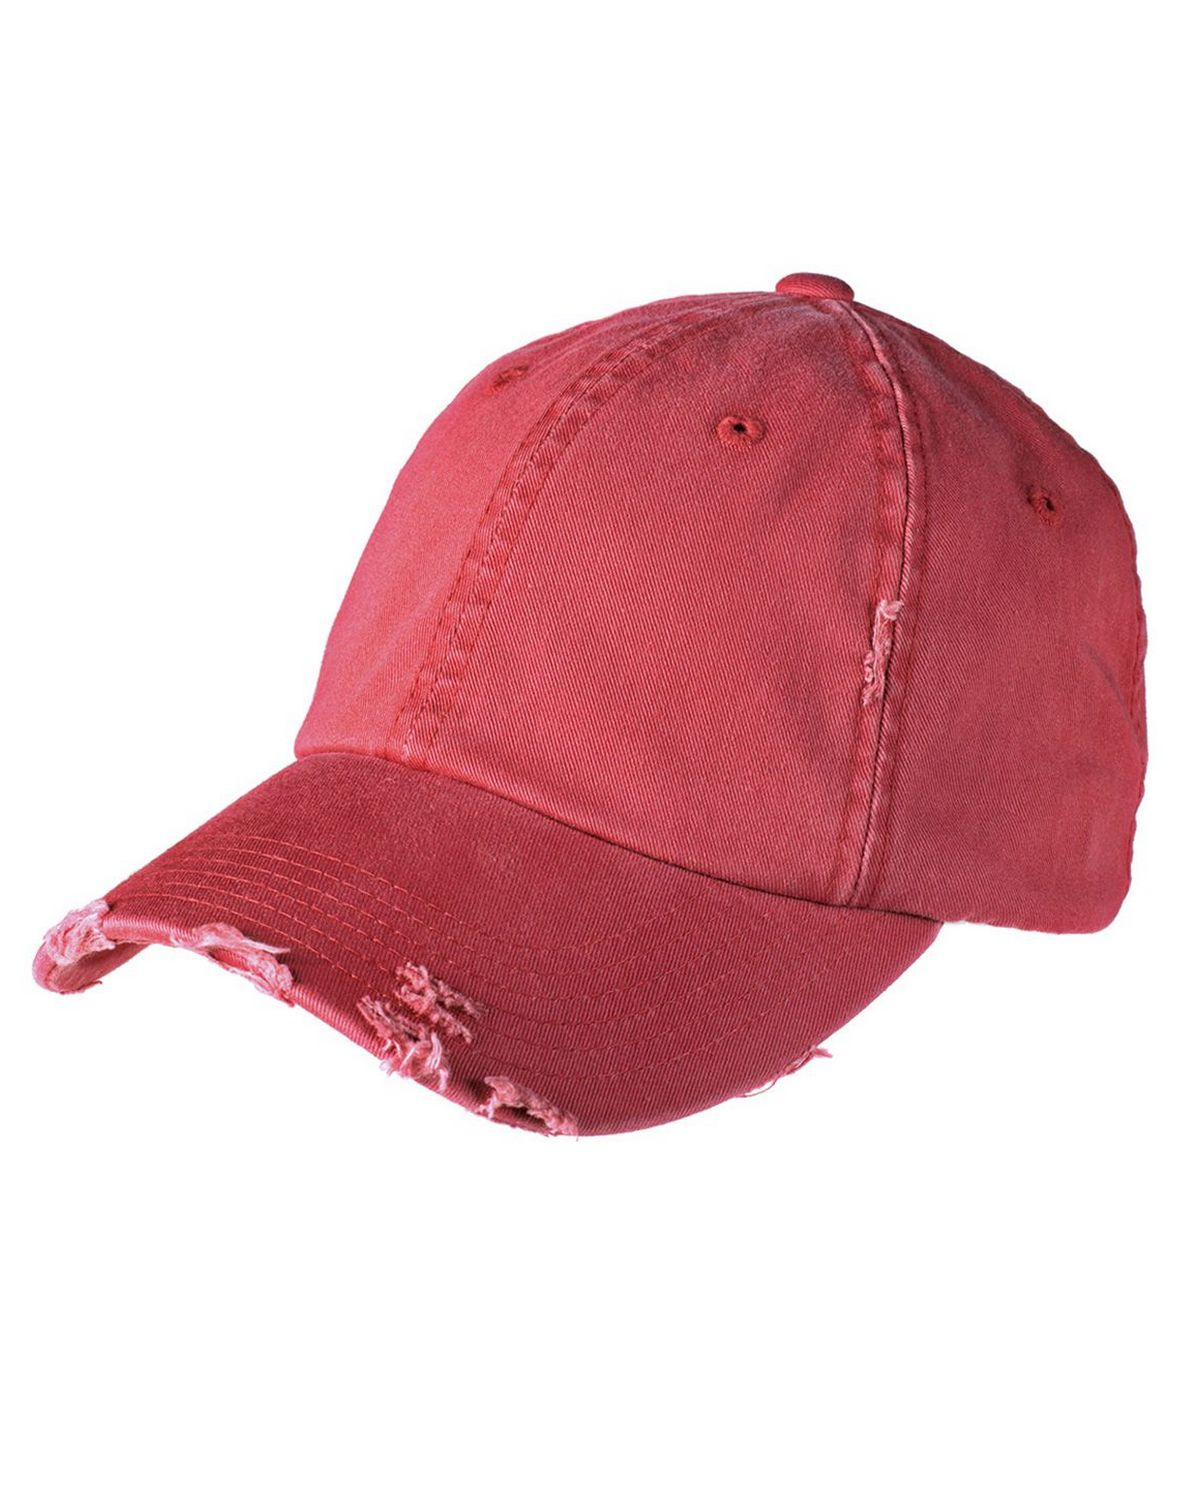 edfe25086c4262 Buy District DT600 Distressed Cap